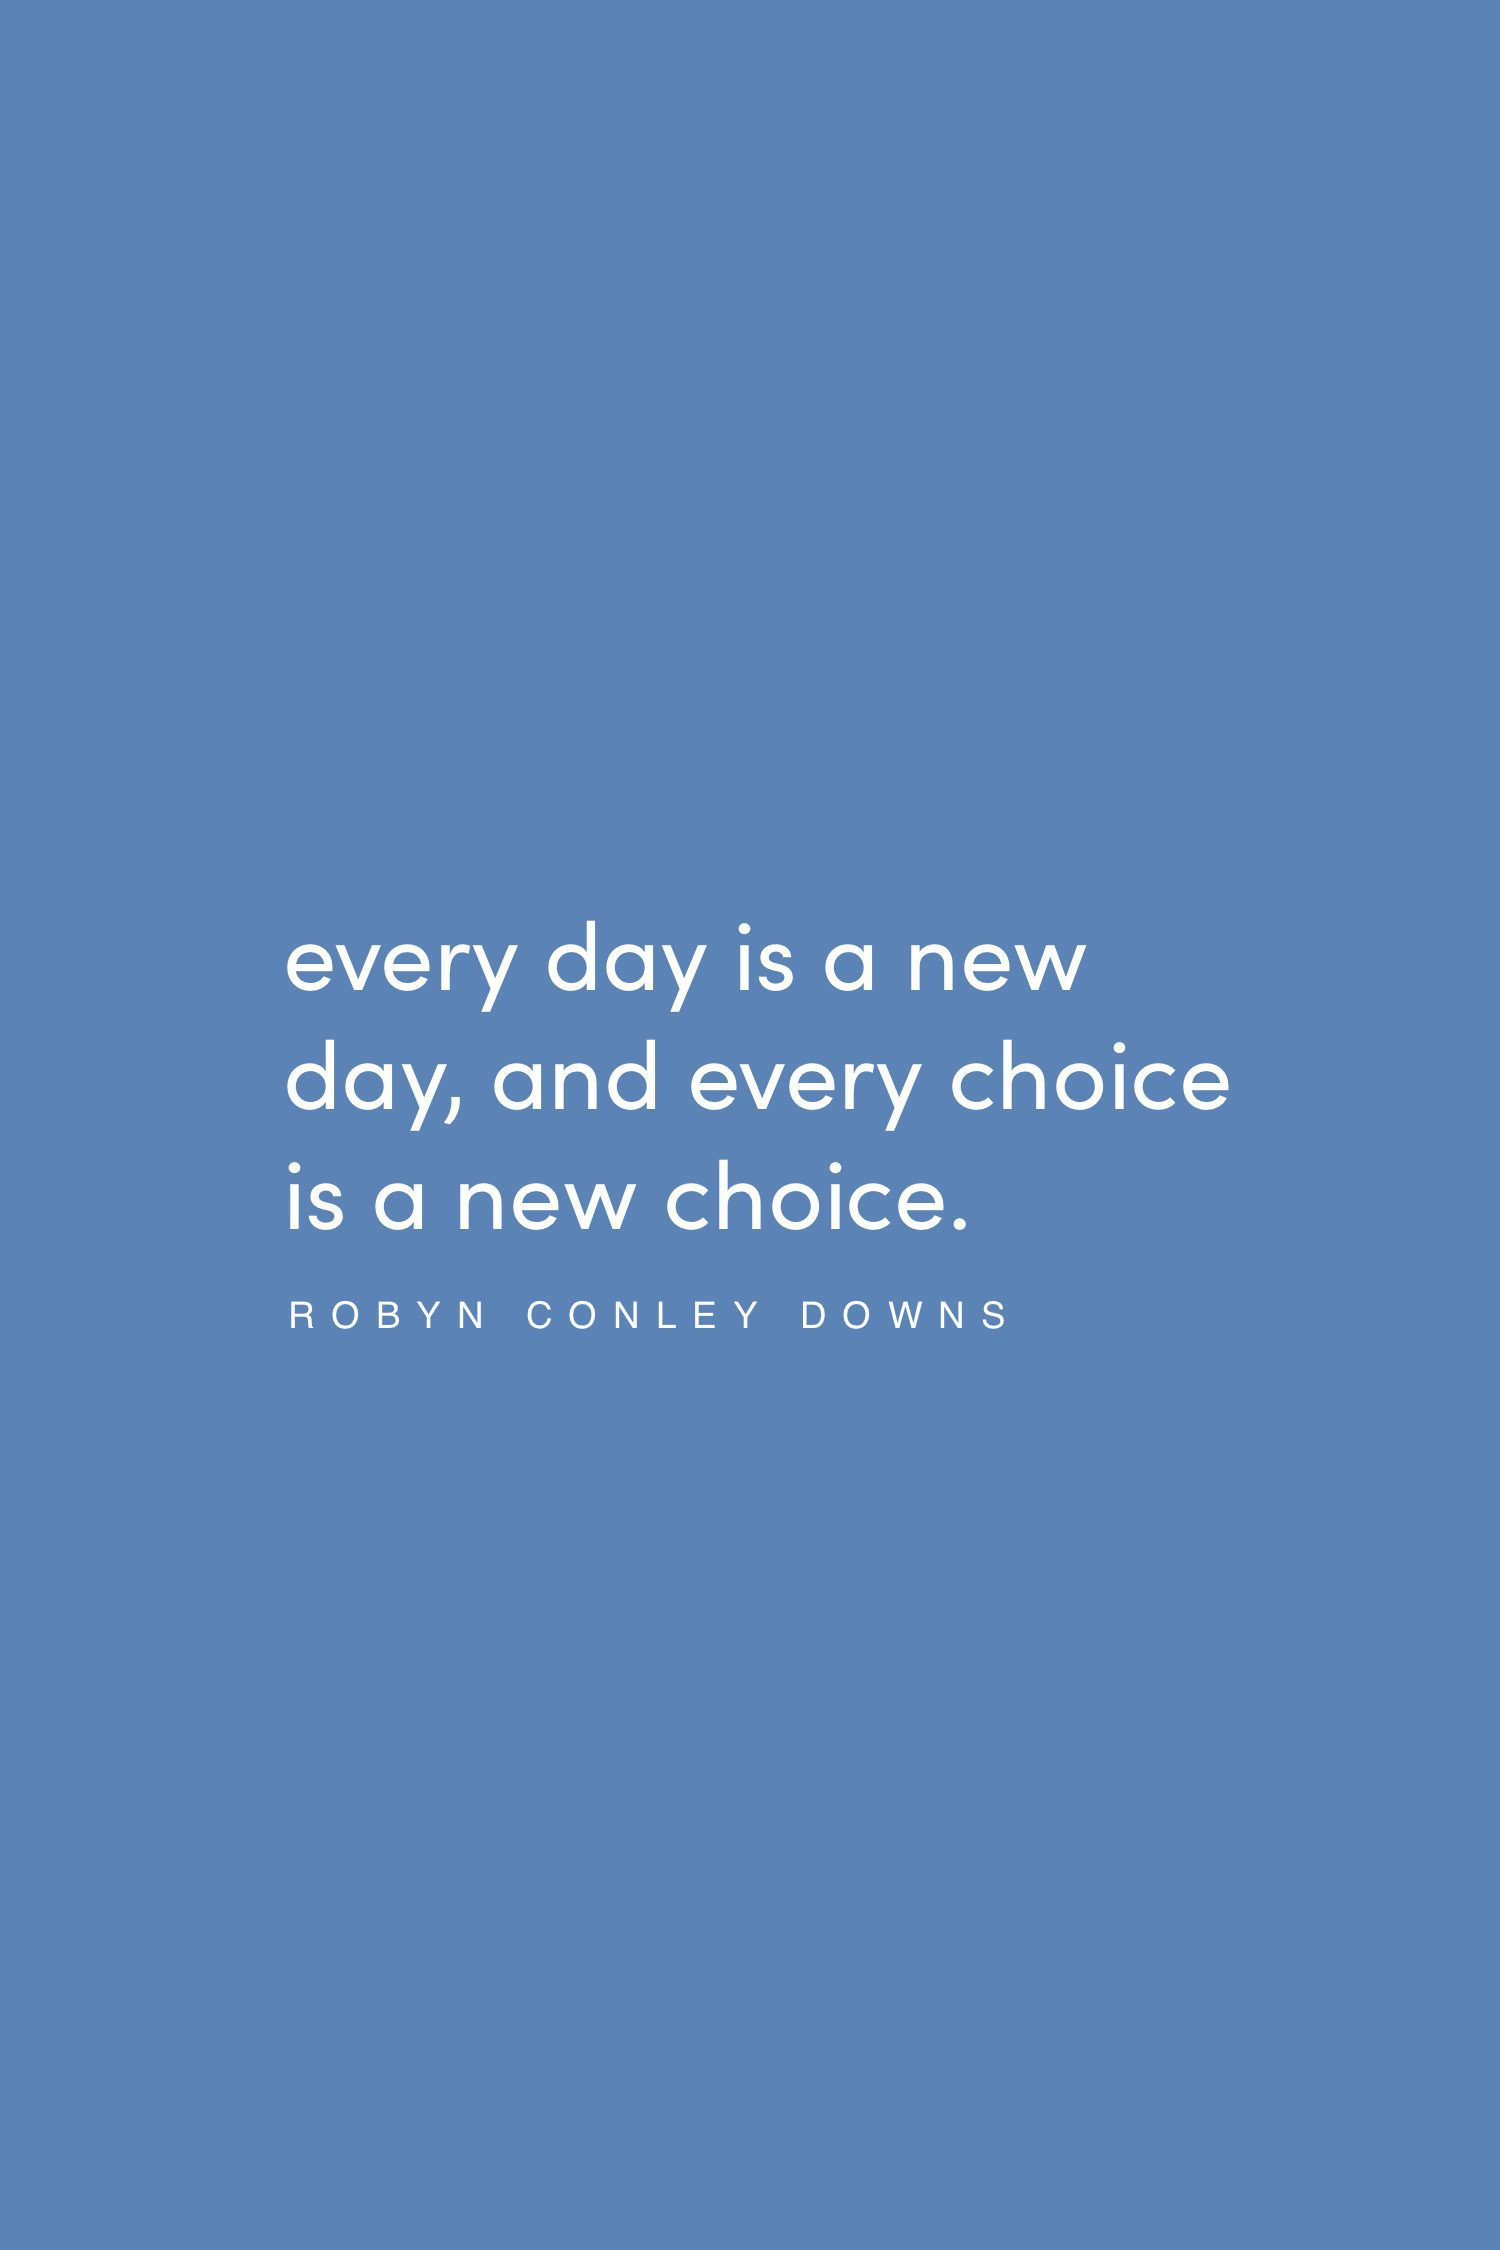 Quote on each day as a new day by Robyn Conley Downs on the Feel Good Effect Podcast #realfoodwholelife #feelgoodeffectpodcast #motivationalquote #inspirationalquote #positivityquote #wordstoliveby #passionquote #purposequote #opportunityquote #growthquote